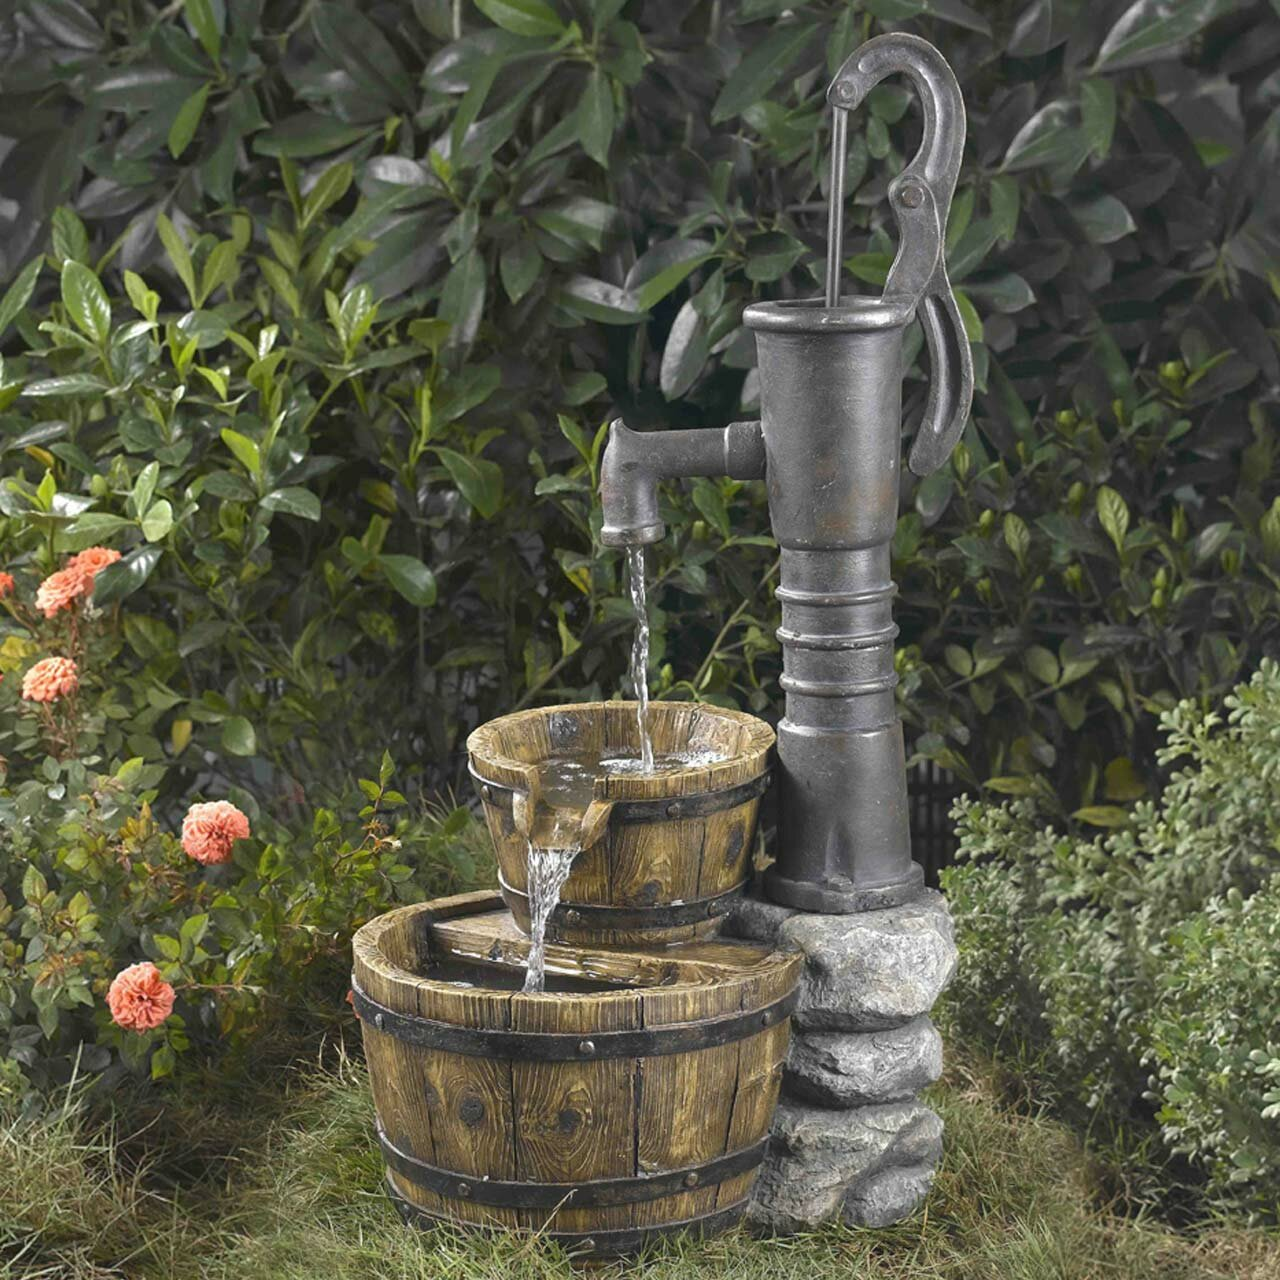 Water fountain pump care - Jeco Inc Resin Fiberglass Old Fashioned Pump Water Fountain